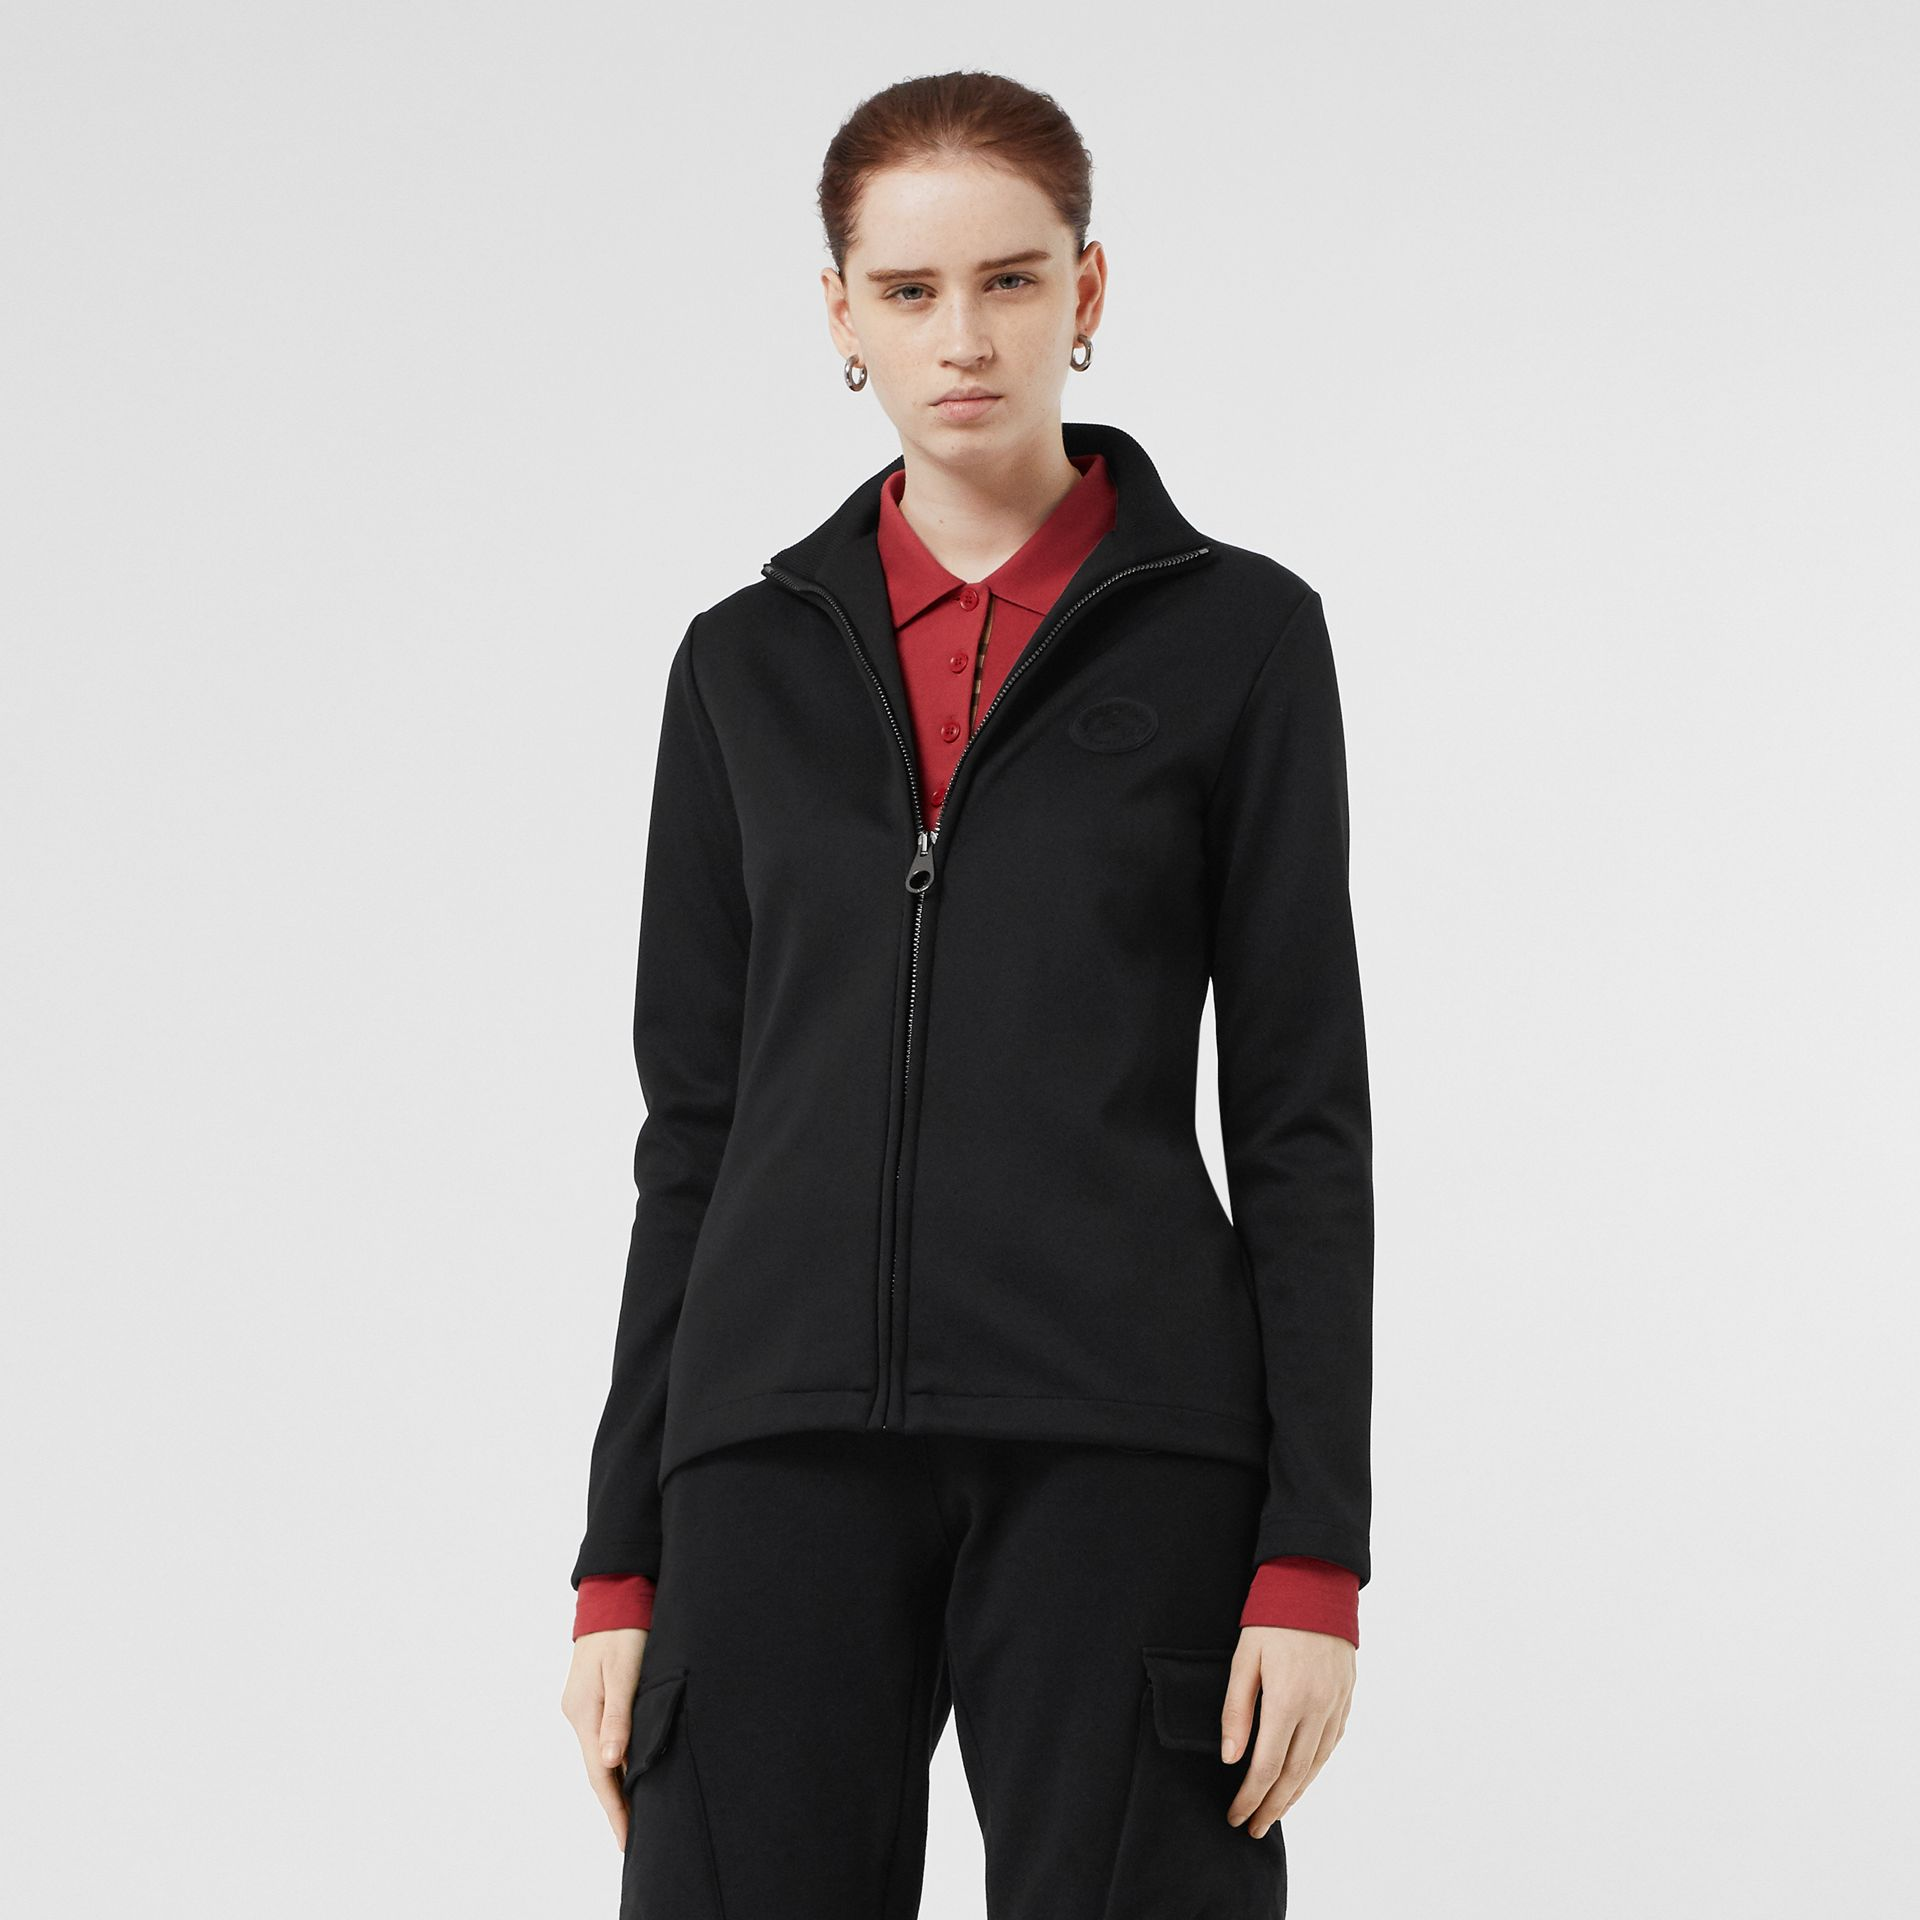 Crest Detail Funnel-neck Track Top in Black - Women | Burberry - gallery image 4